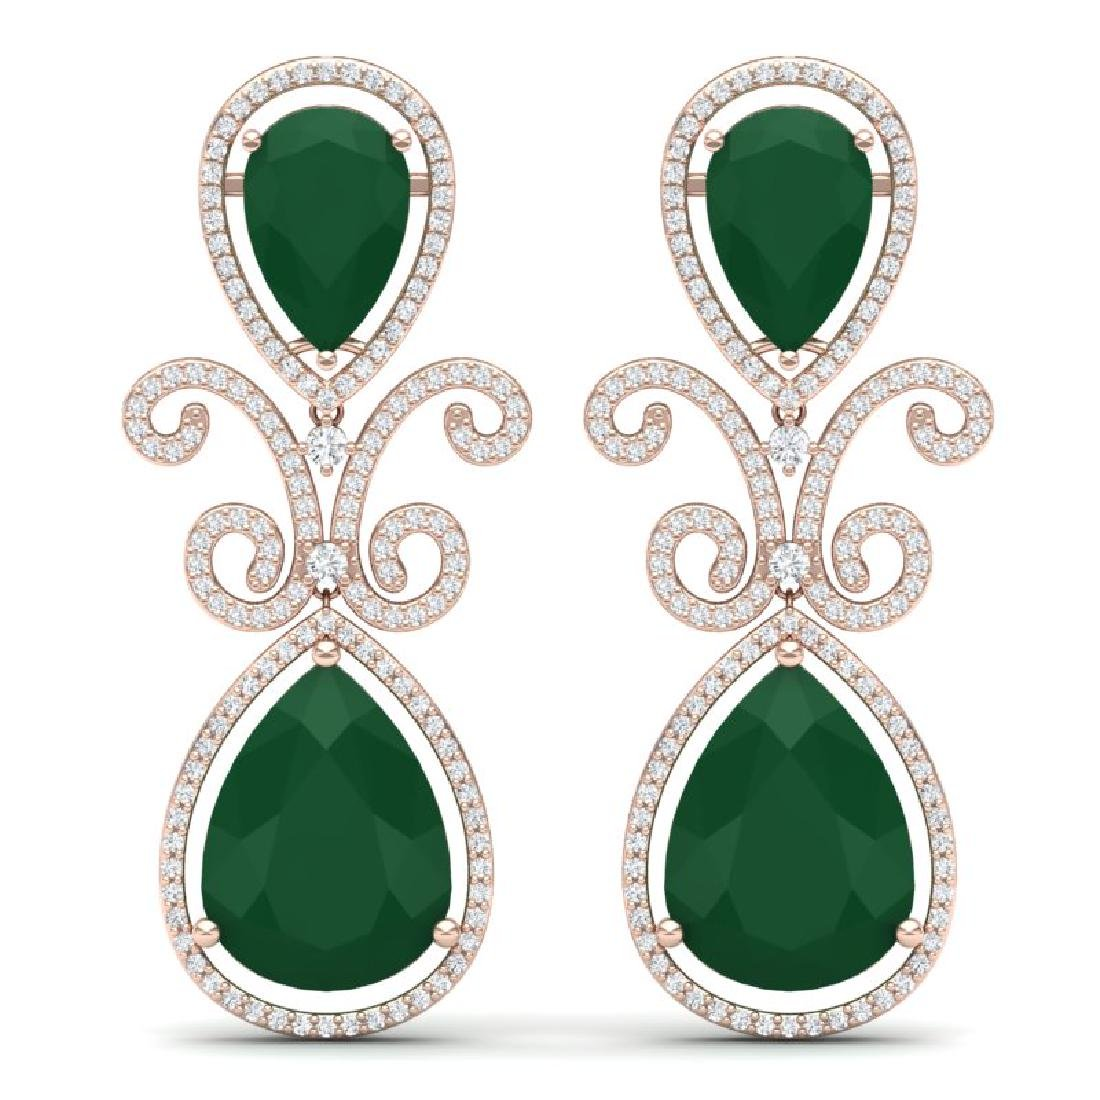 31.6 CTW Royalty Emerald & VS Diamond Earrings 18K Rose